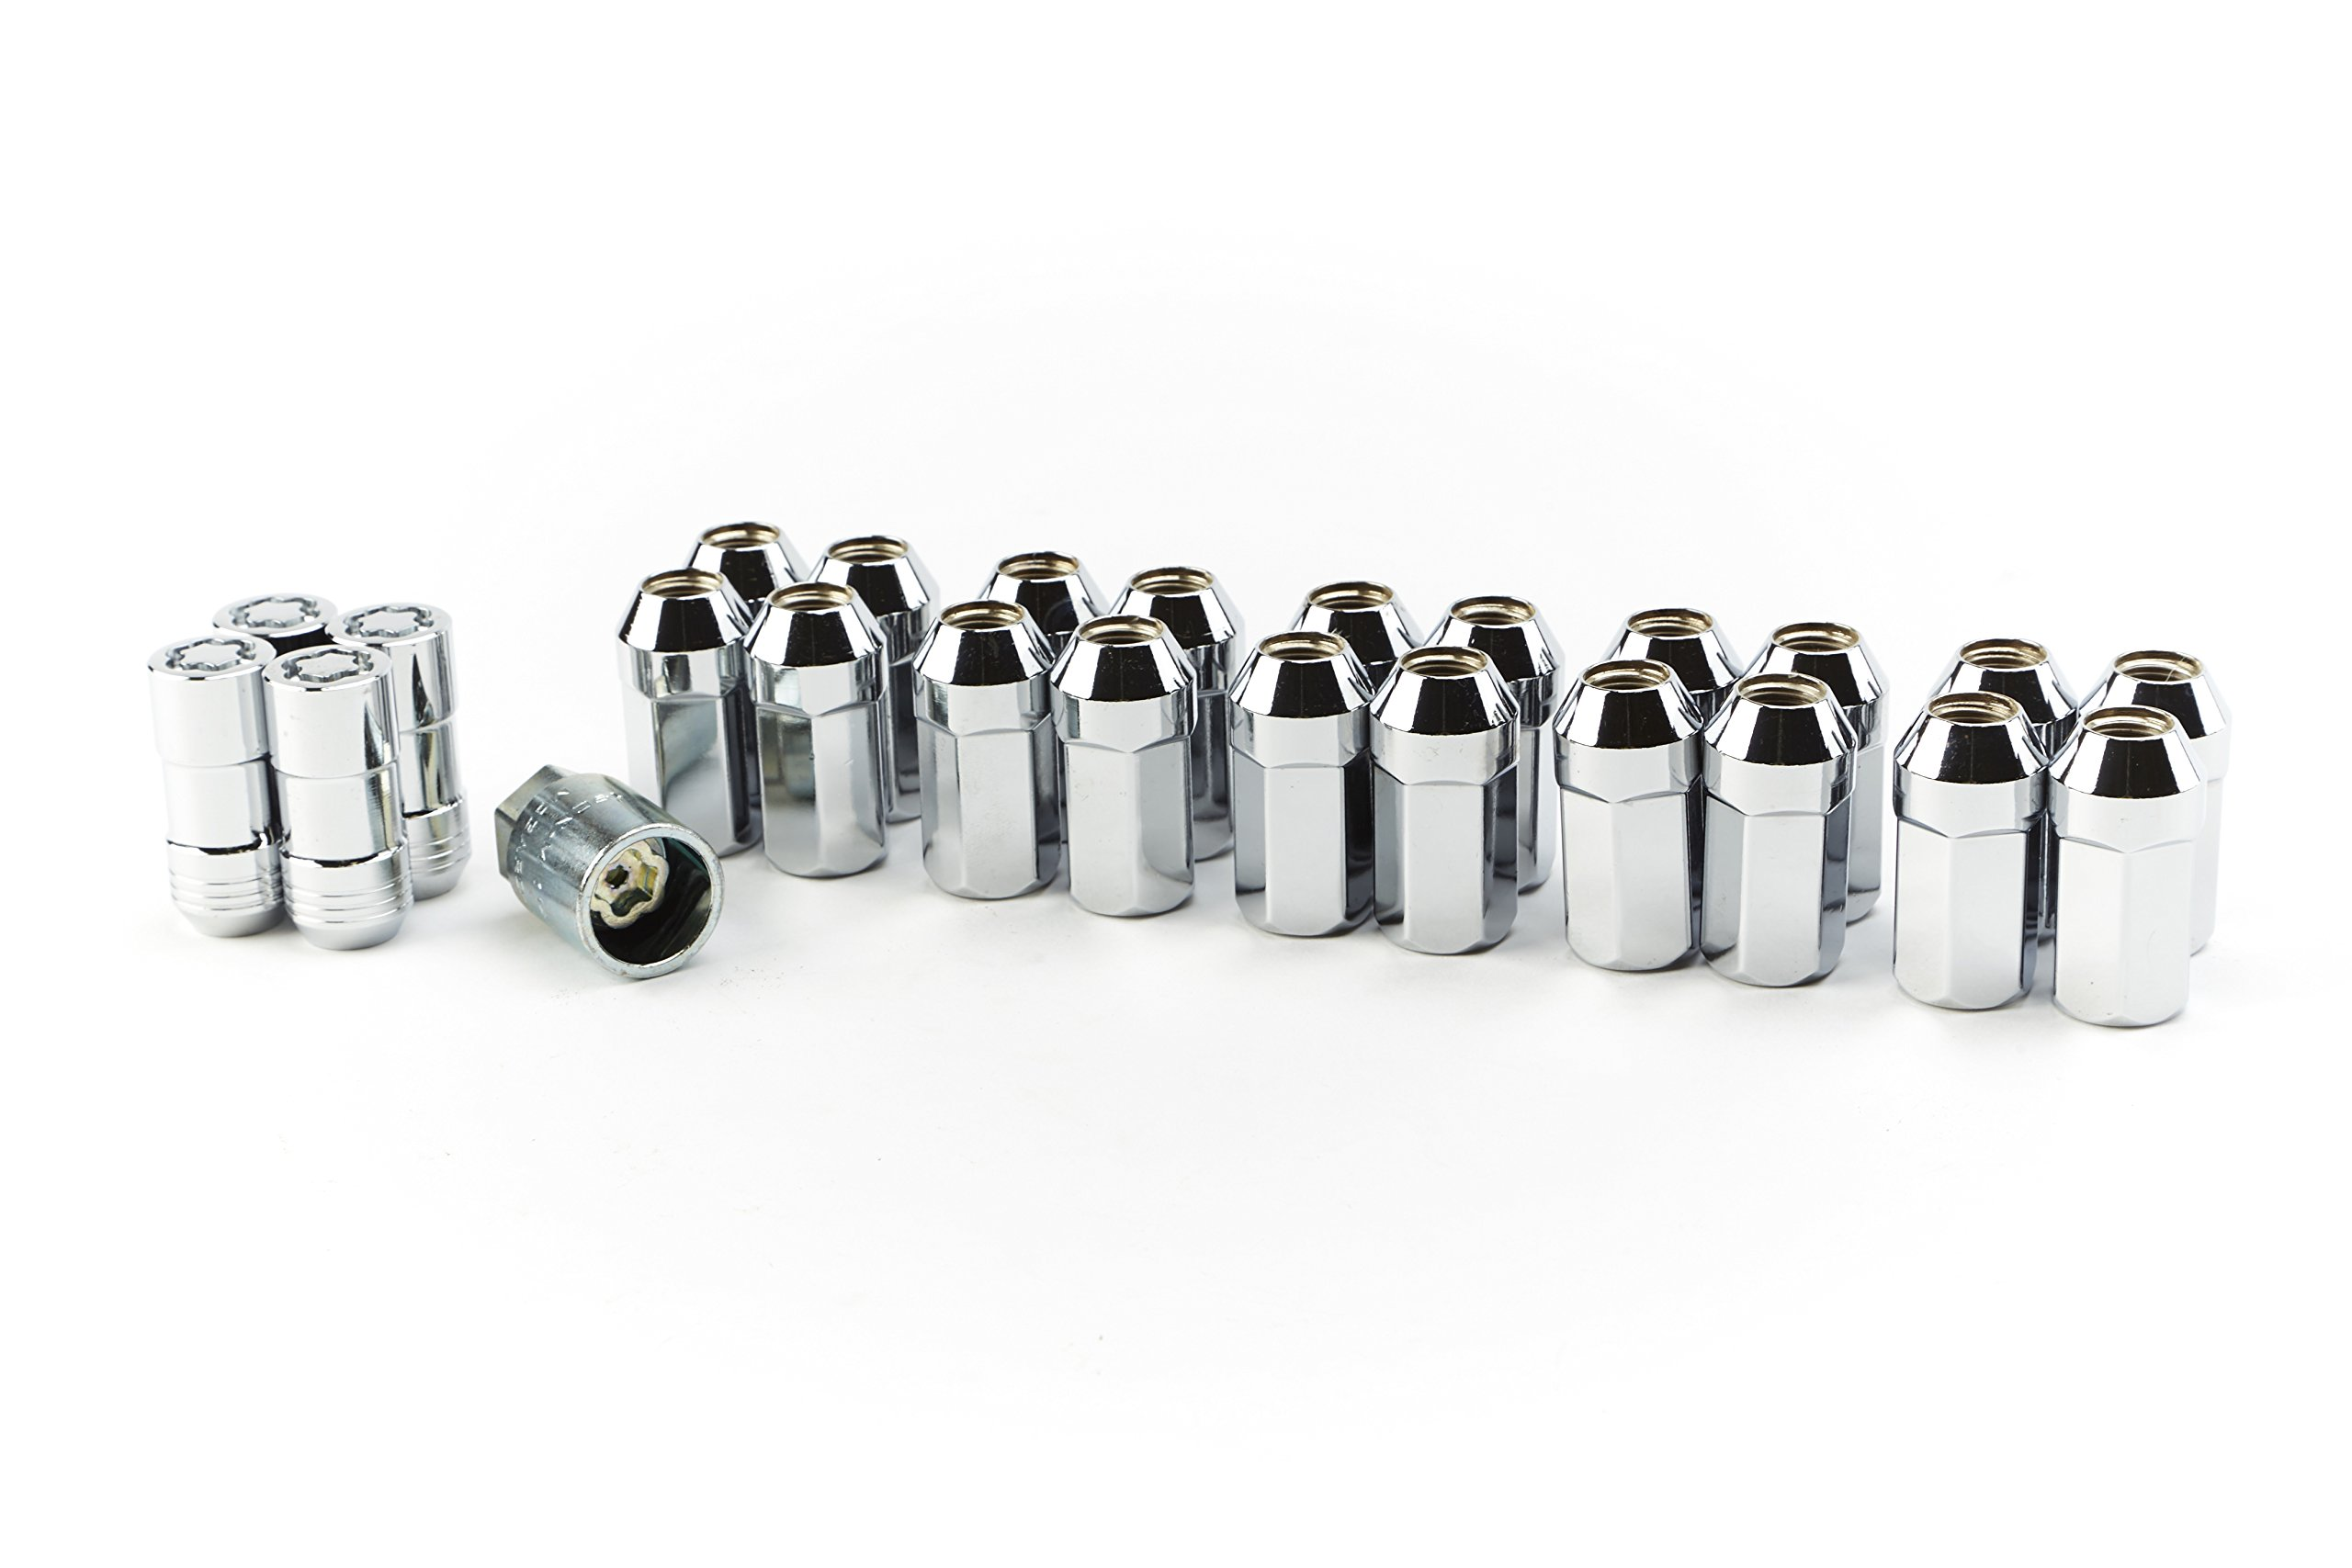 GM Accessories 19212923 M14x1.5 Steel Wheel Lug Nuts (20) and Locking Nuts (4) in Chrome with Key